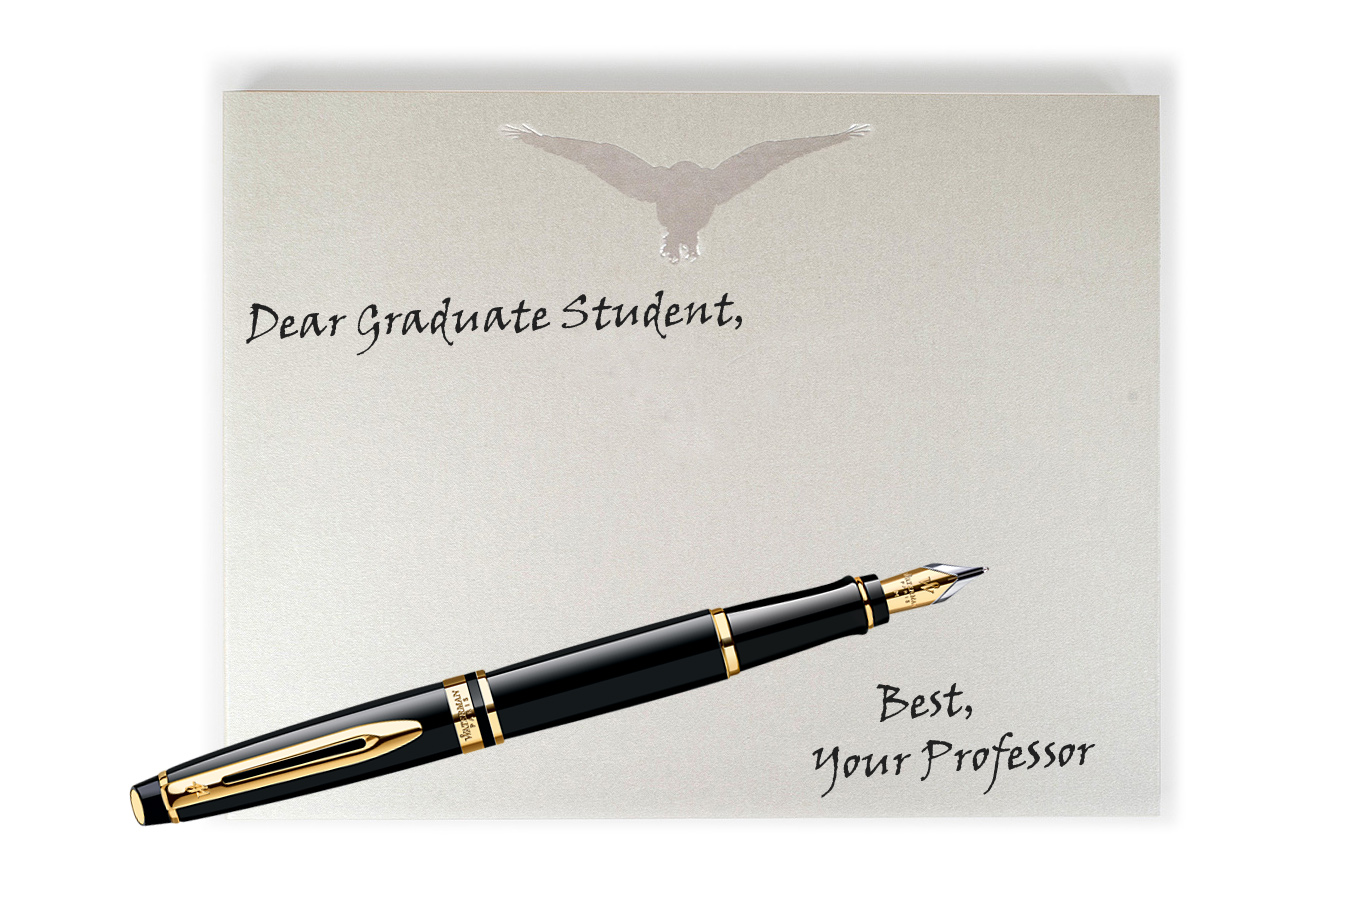 dear-grad-student-stationery-and-pen